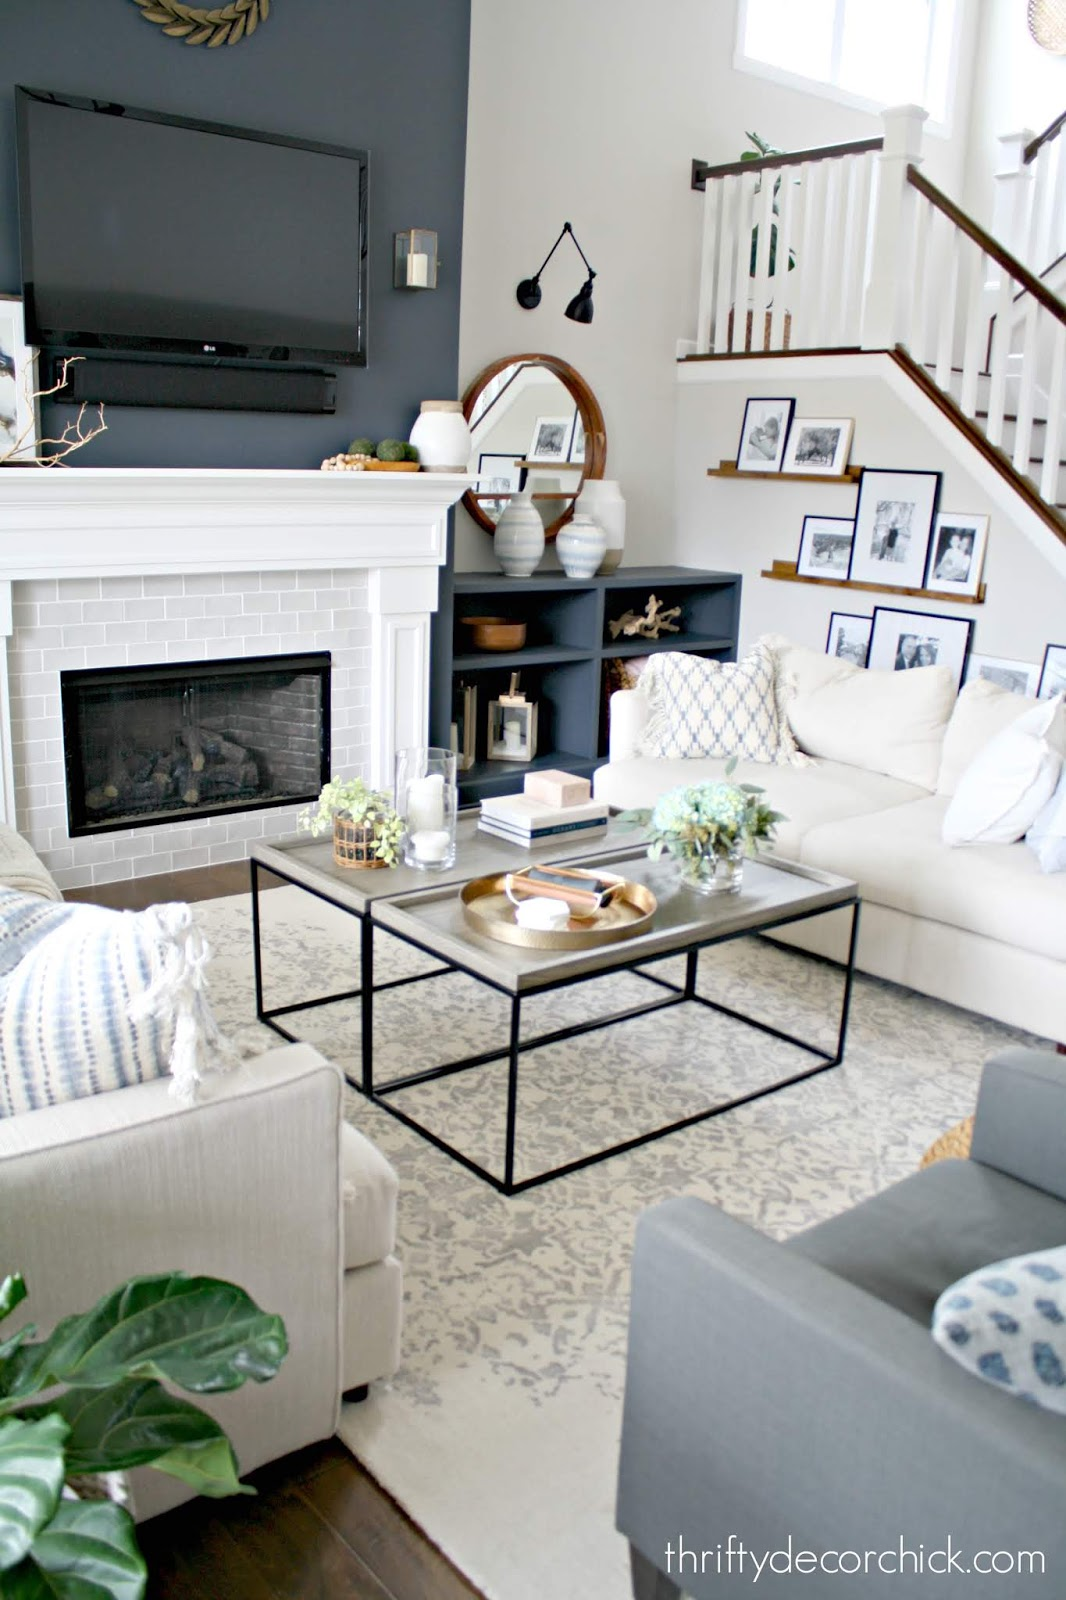 Symmetrical family room with two sofas, chairs and tables